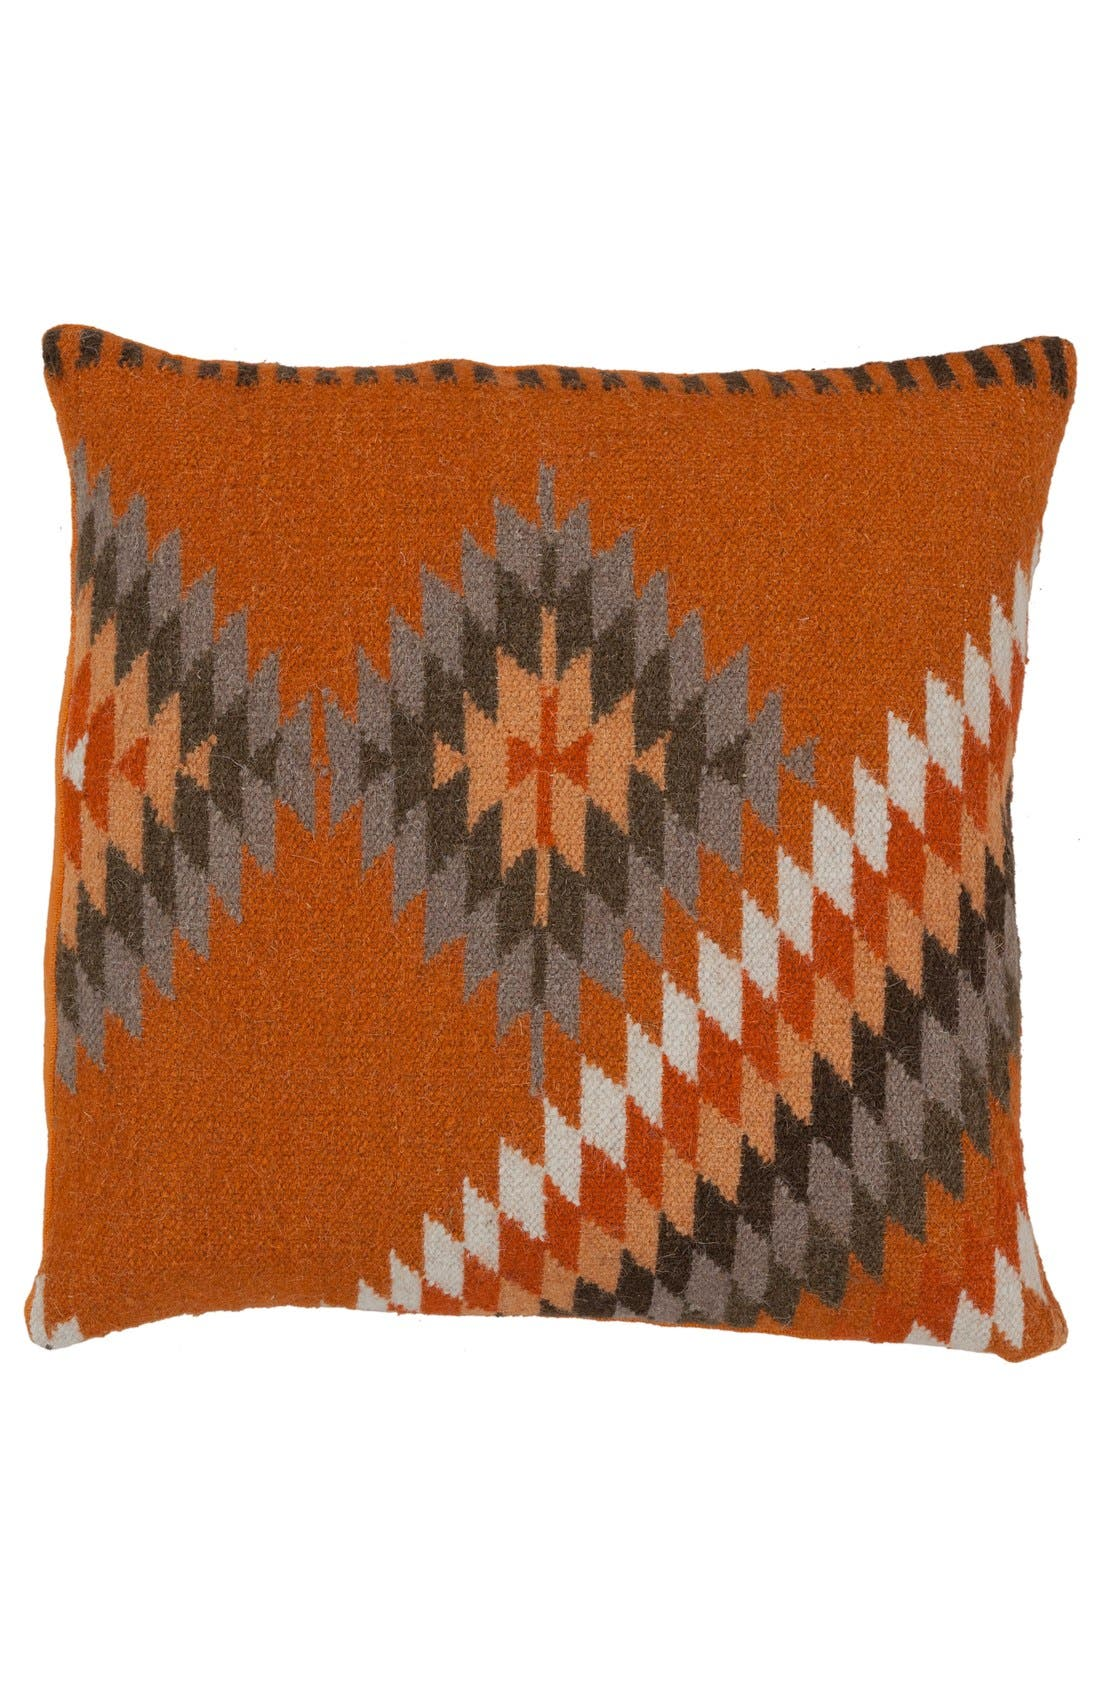 Main Image - Surya Home 'Kilim' Wool Accent Pillow